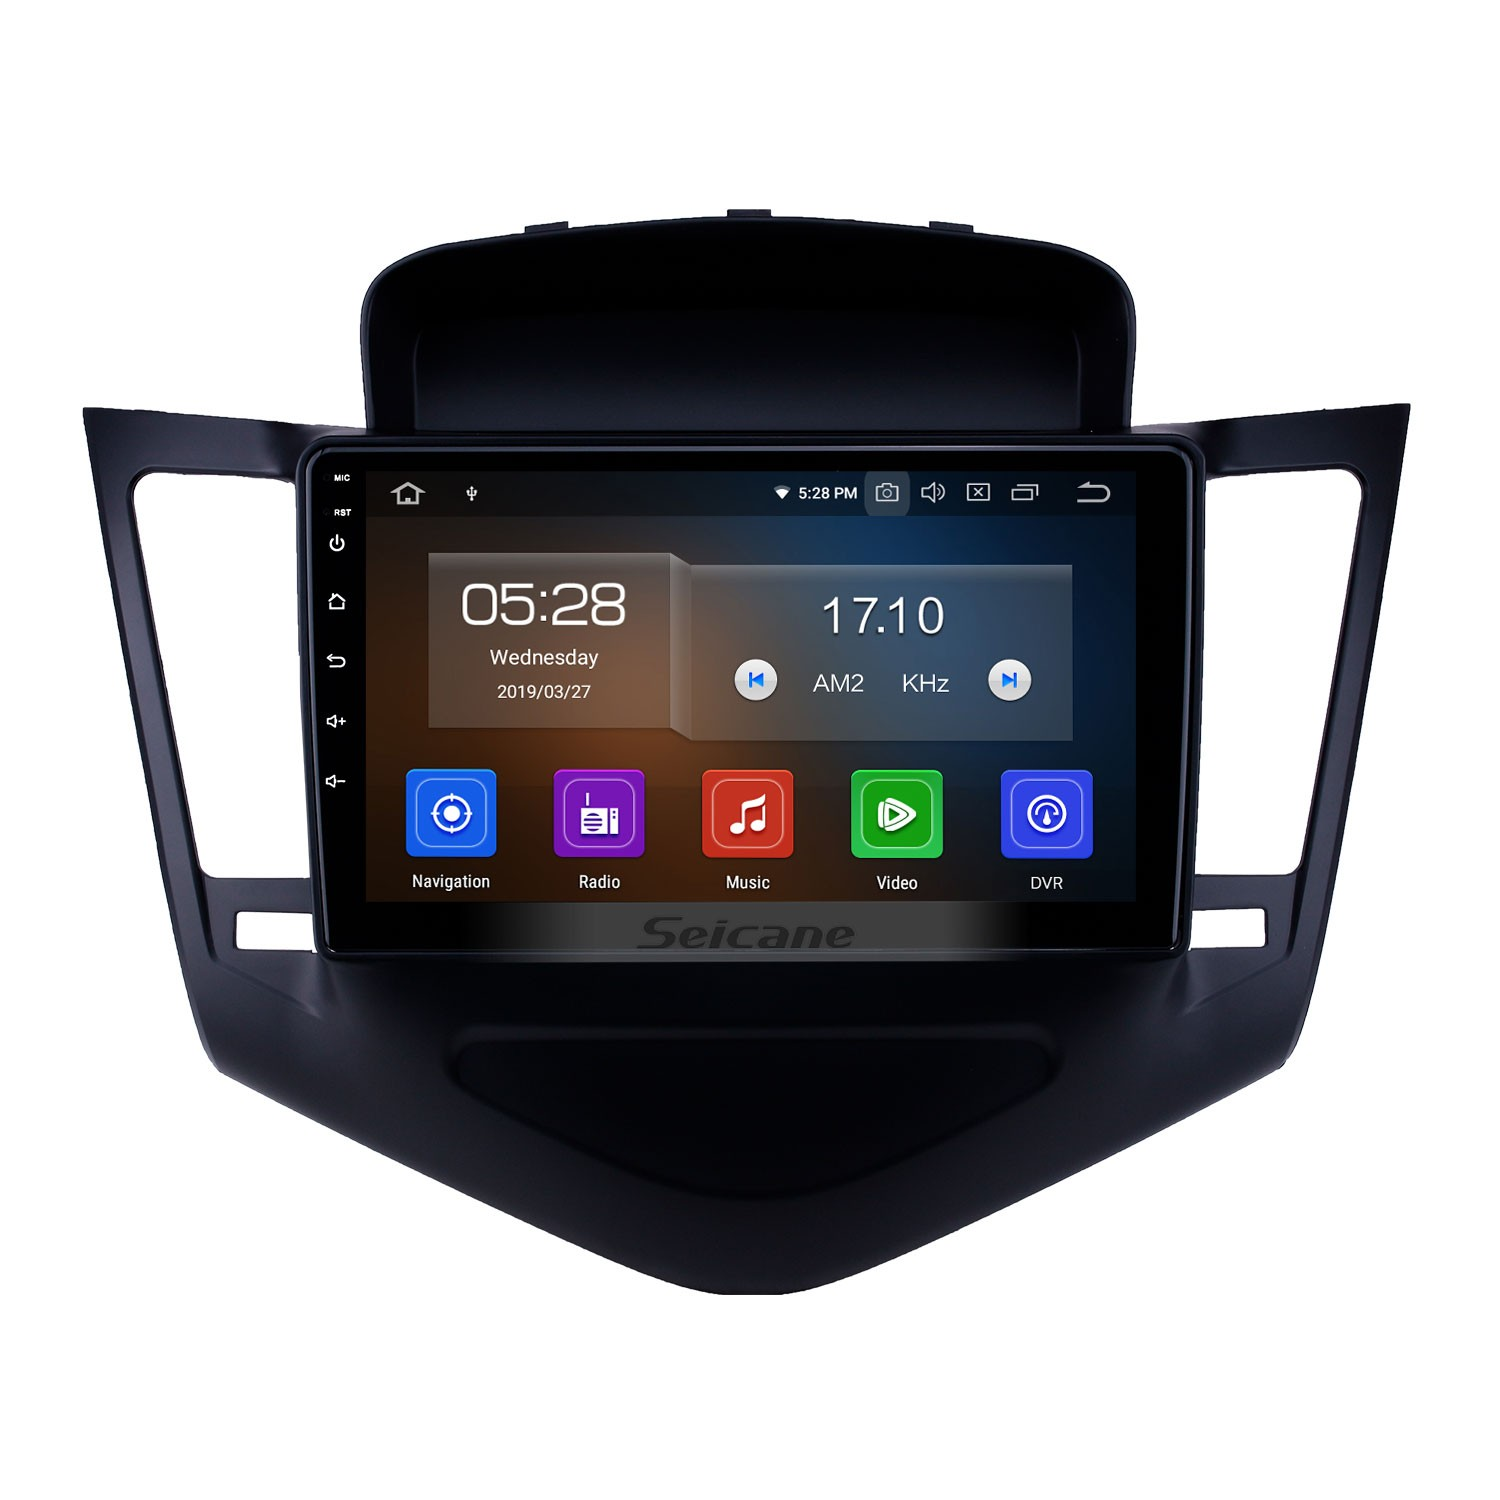 hight resolution of 2013 2015 chevy chevrolet cruze android 9 0 9 inch gps navigation bluetooth radio with usb fm